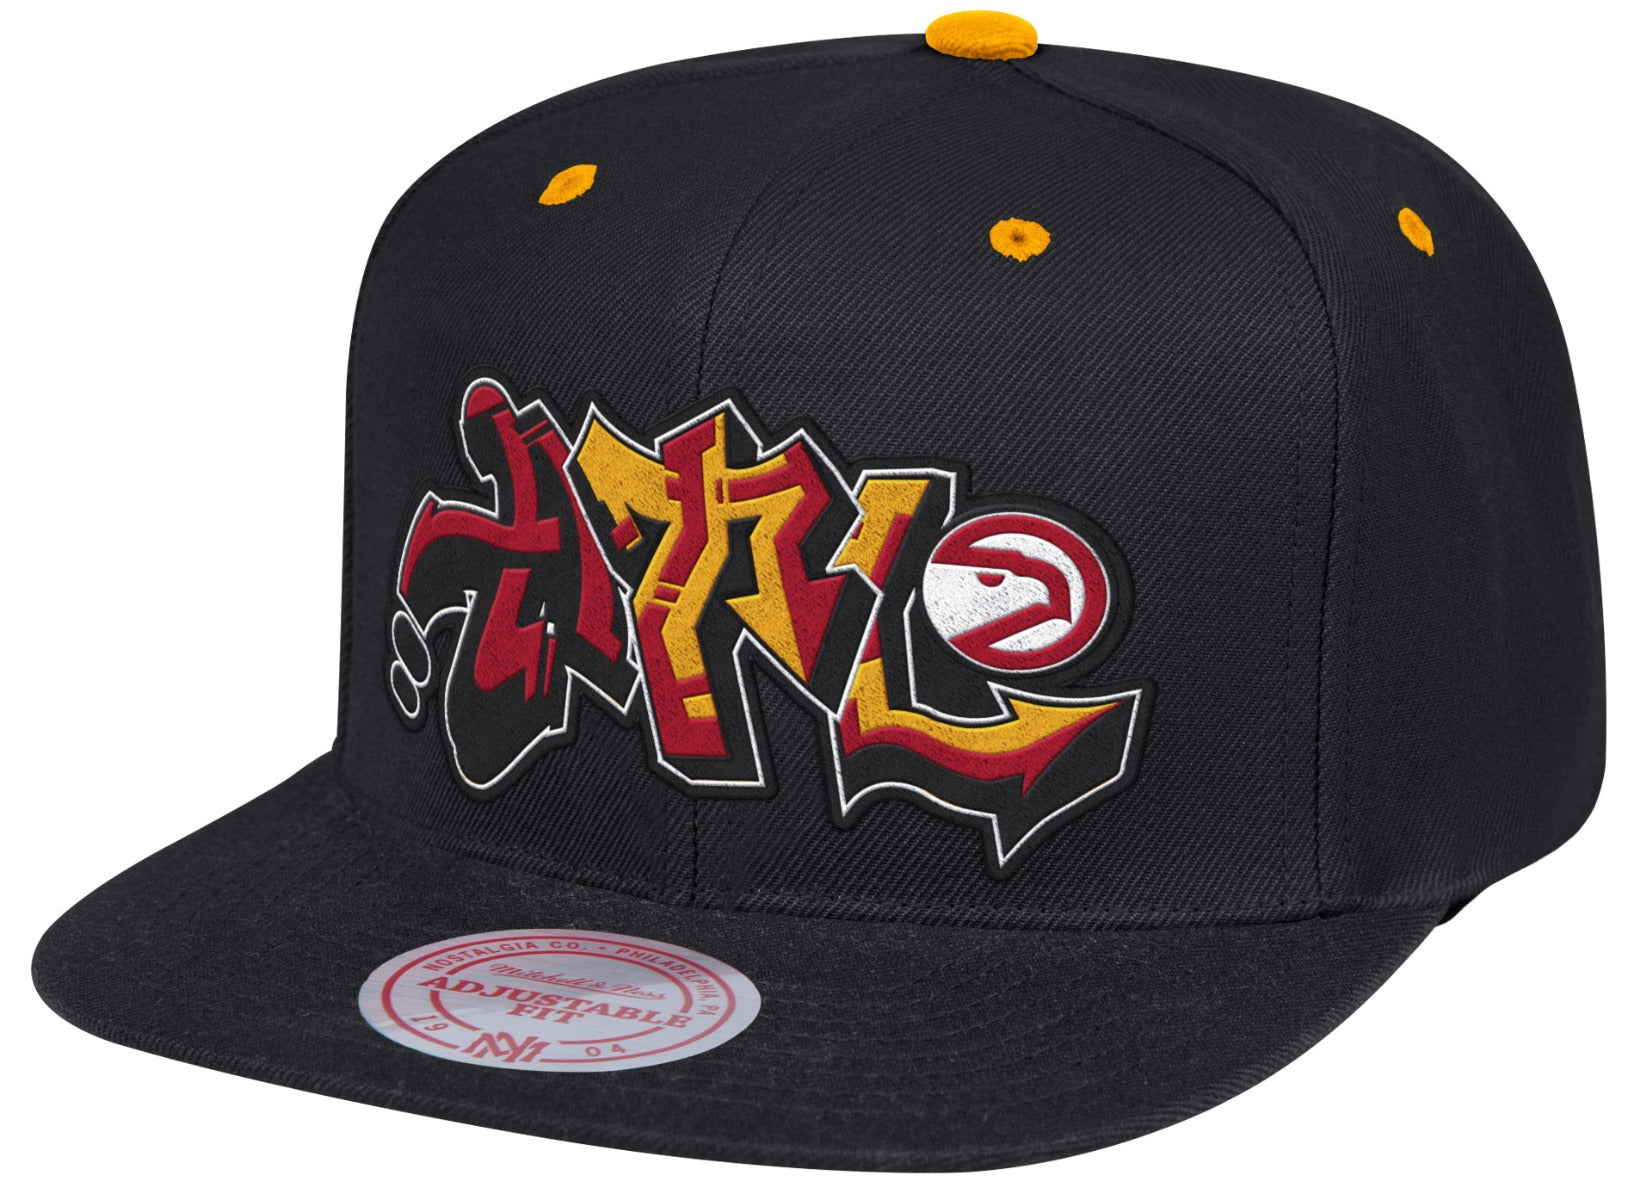 ee91461da501b Mitchell   Ness Graffiti Snapback - Hawks Shop - Official Team Store